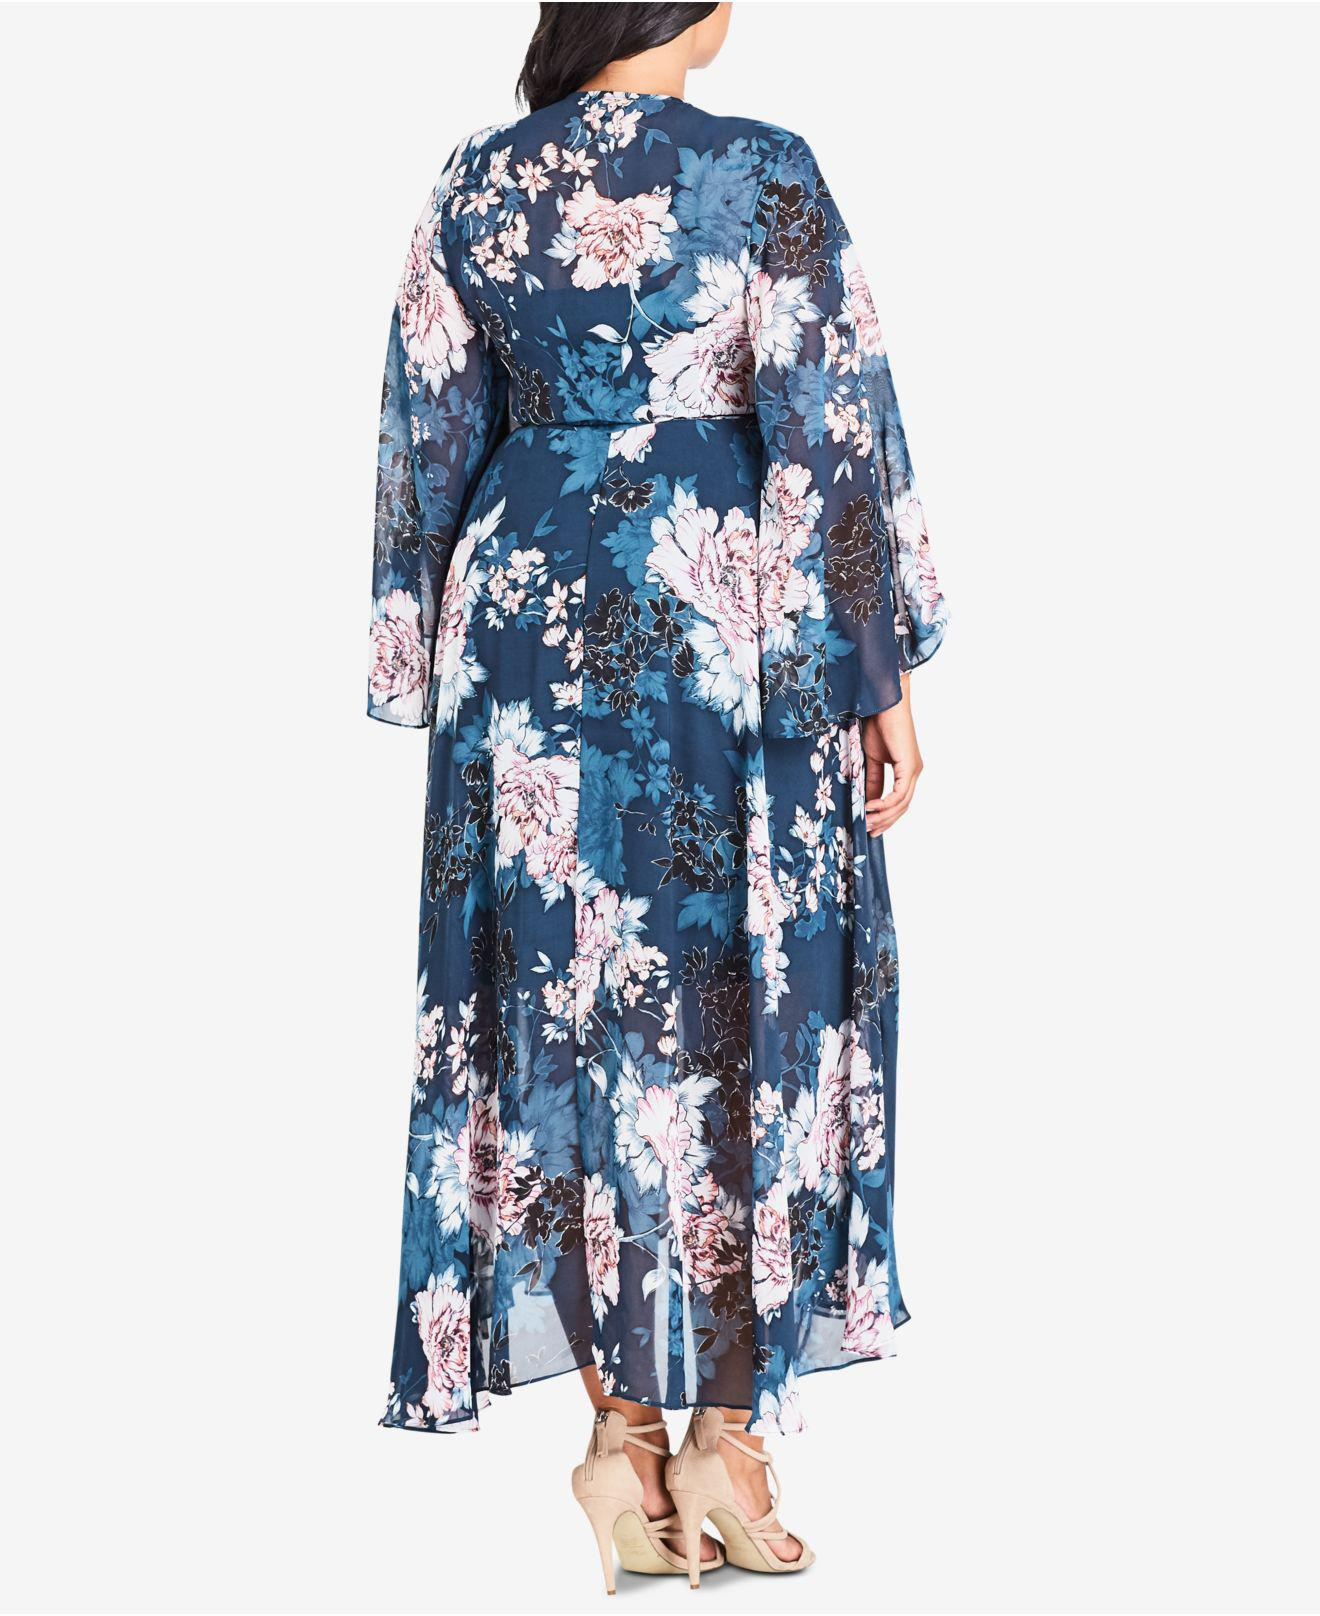 80b09baa69 Lyst - City Chic Plus Size Jade Blossom High-low Dress in Blue